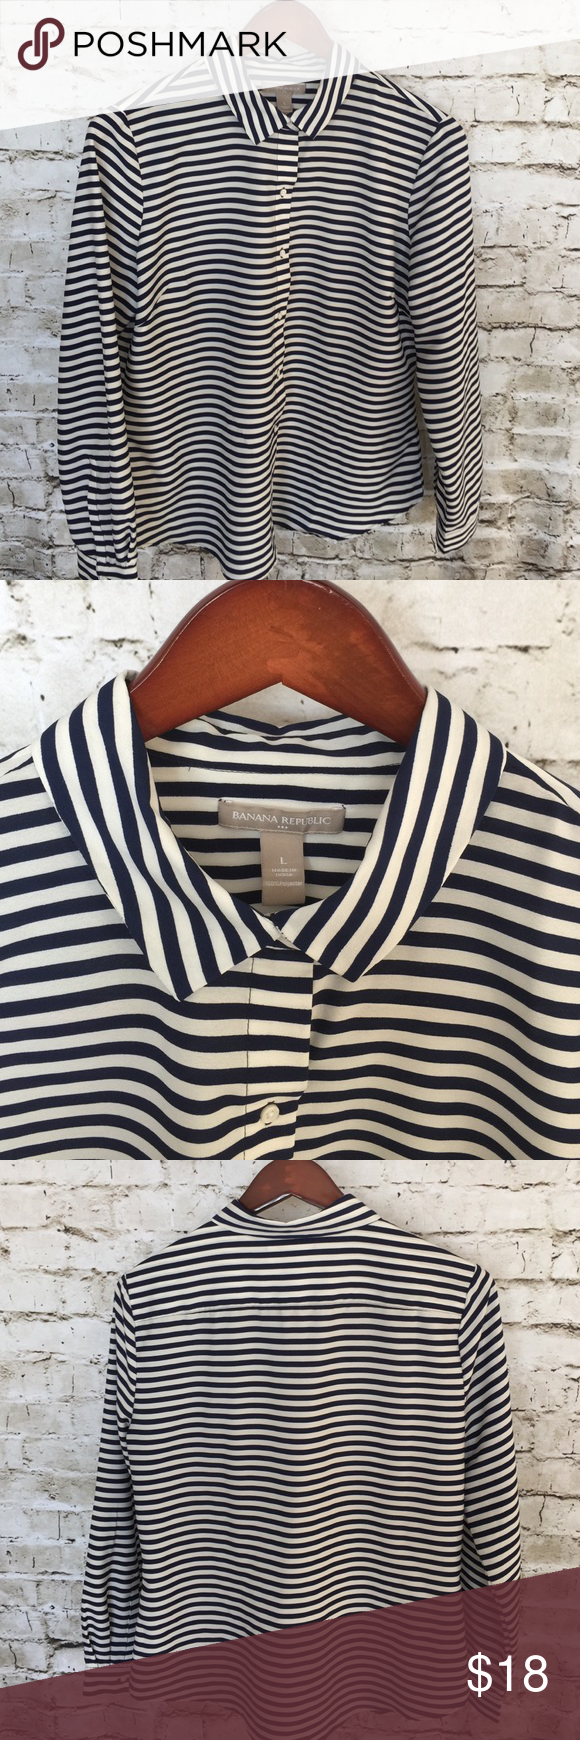 Banana Republic Factory Blouse Size L Banana Republic Factory Blouse Size L. Crisp navy and white stripes. 100% Poly. Dry clean only. Gentle bust darts for a flattering fit. Banana Republic Tops Button Down Shirts